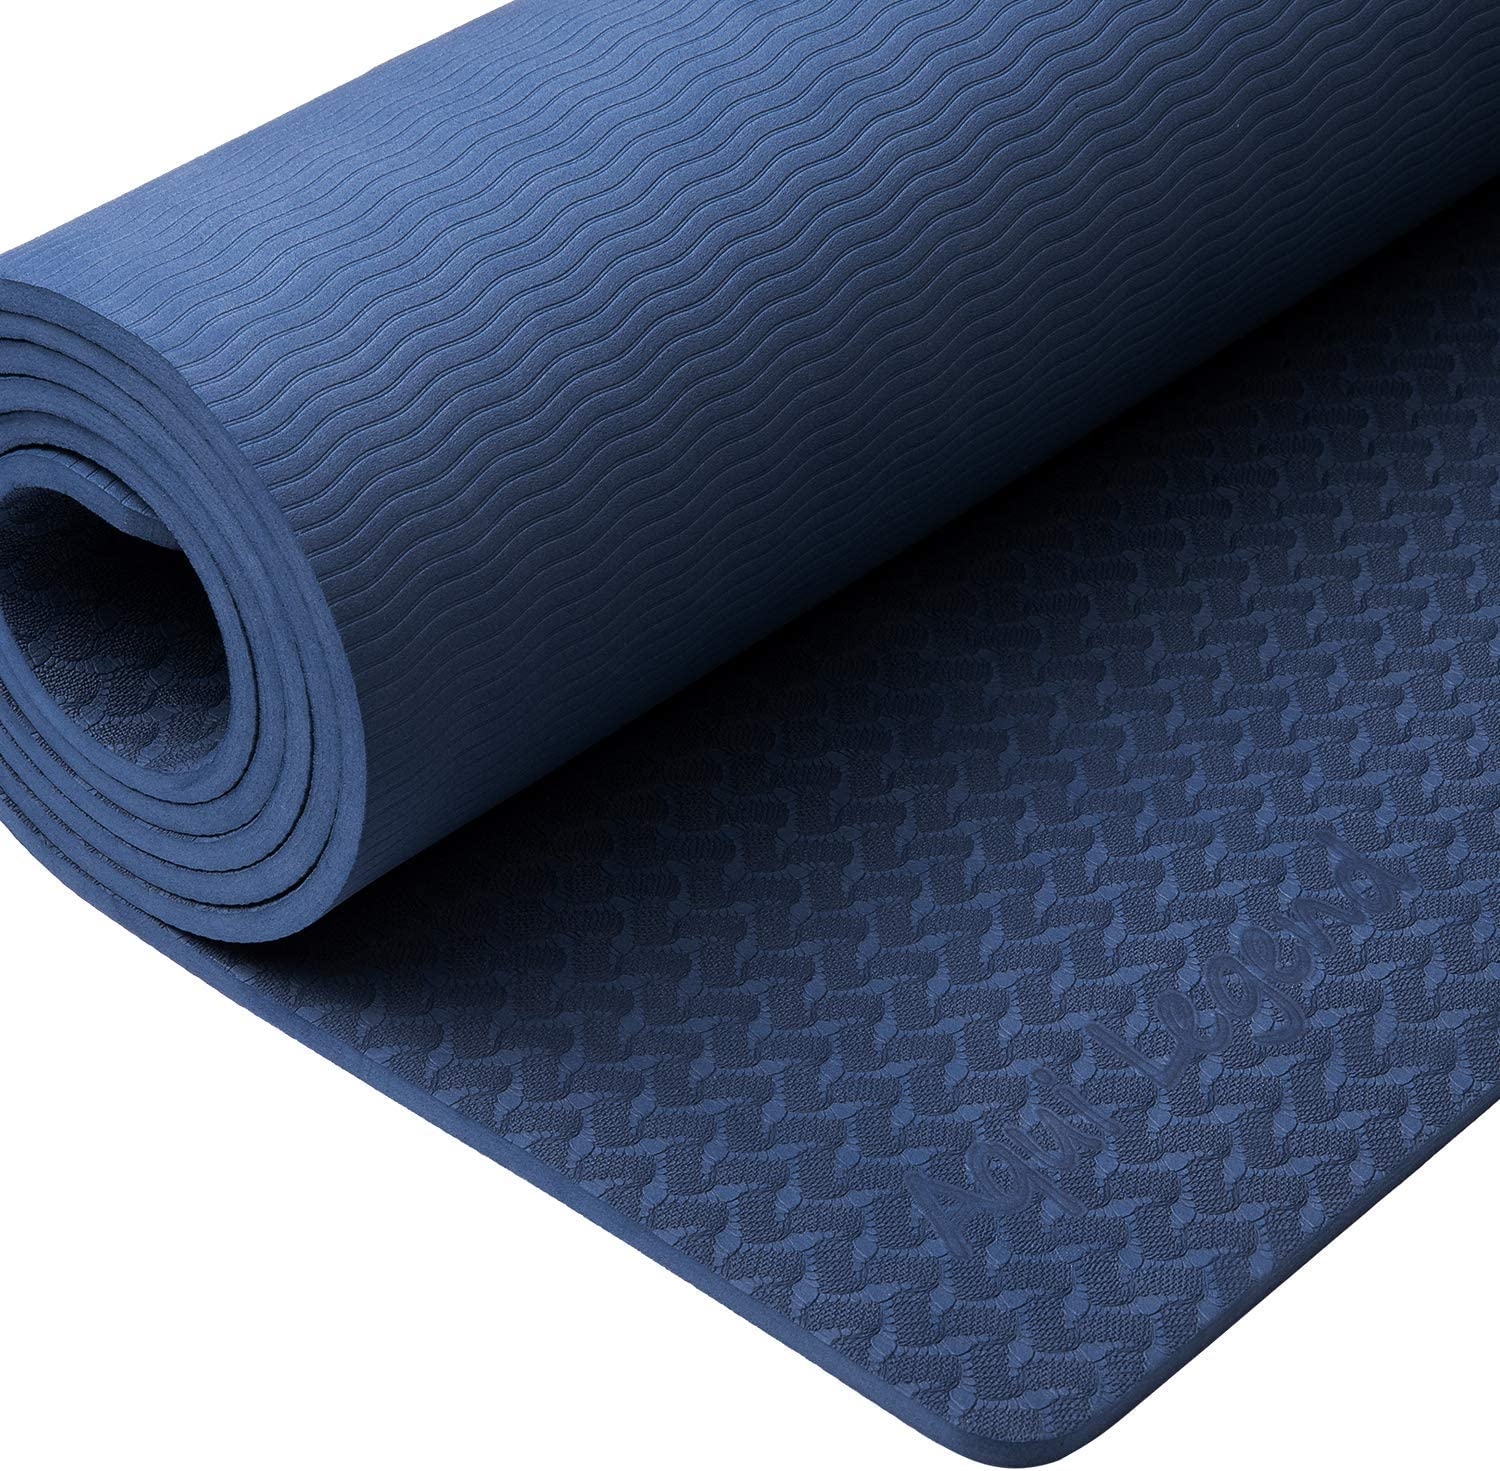 Aqui Legend Yoga Mat-Upgraded Non-Slip Exercise Mat with Carry Strap,Extra Thick Odorless Pilates Workout Mat for Hot Yoga, Pilates & Floor ...